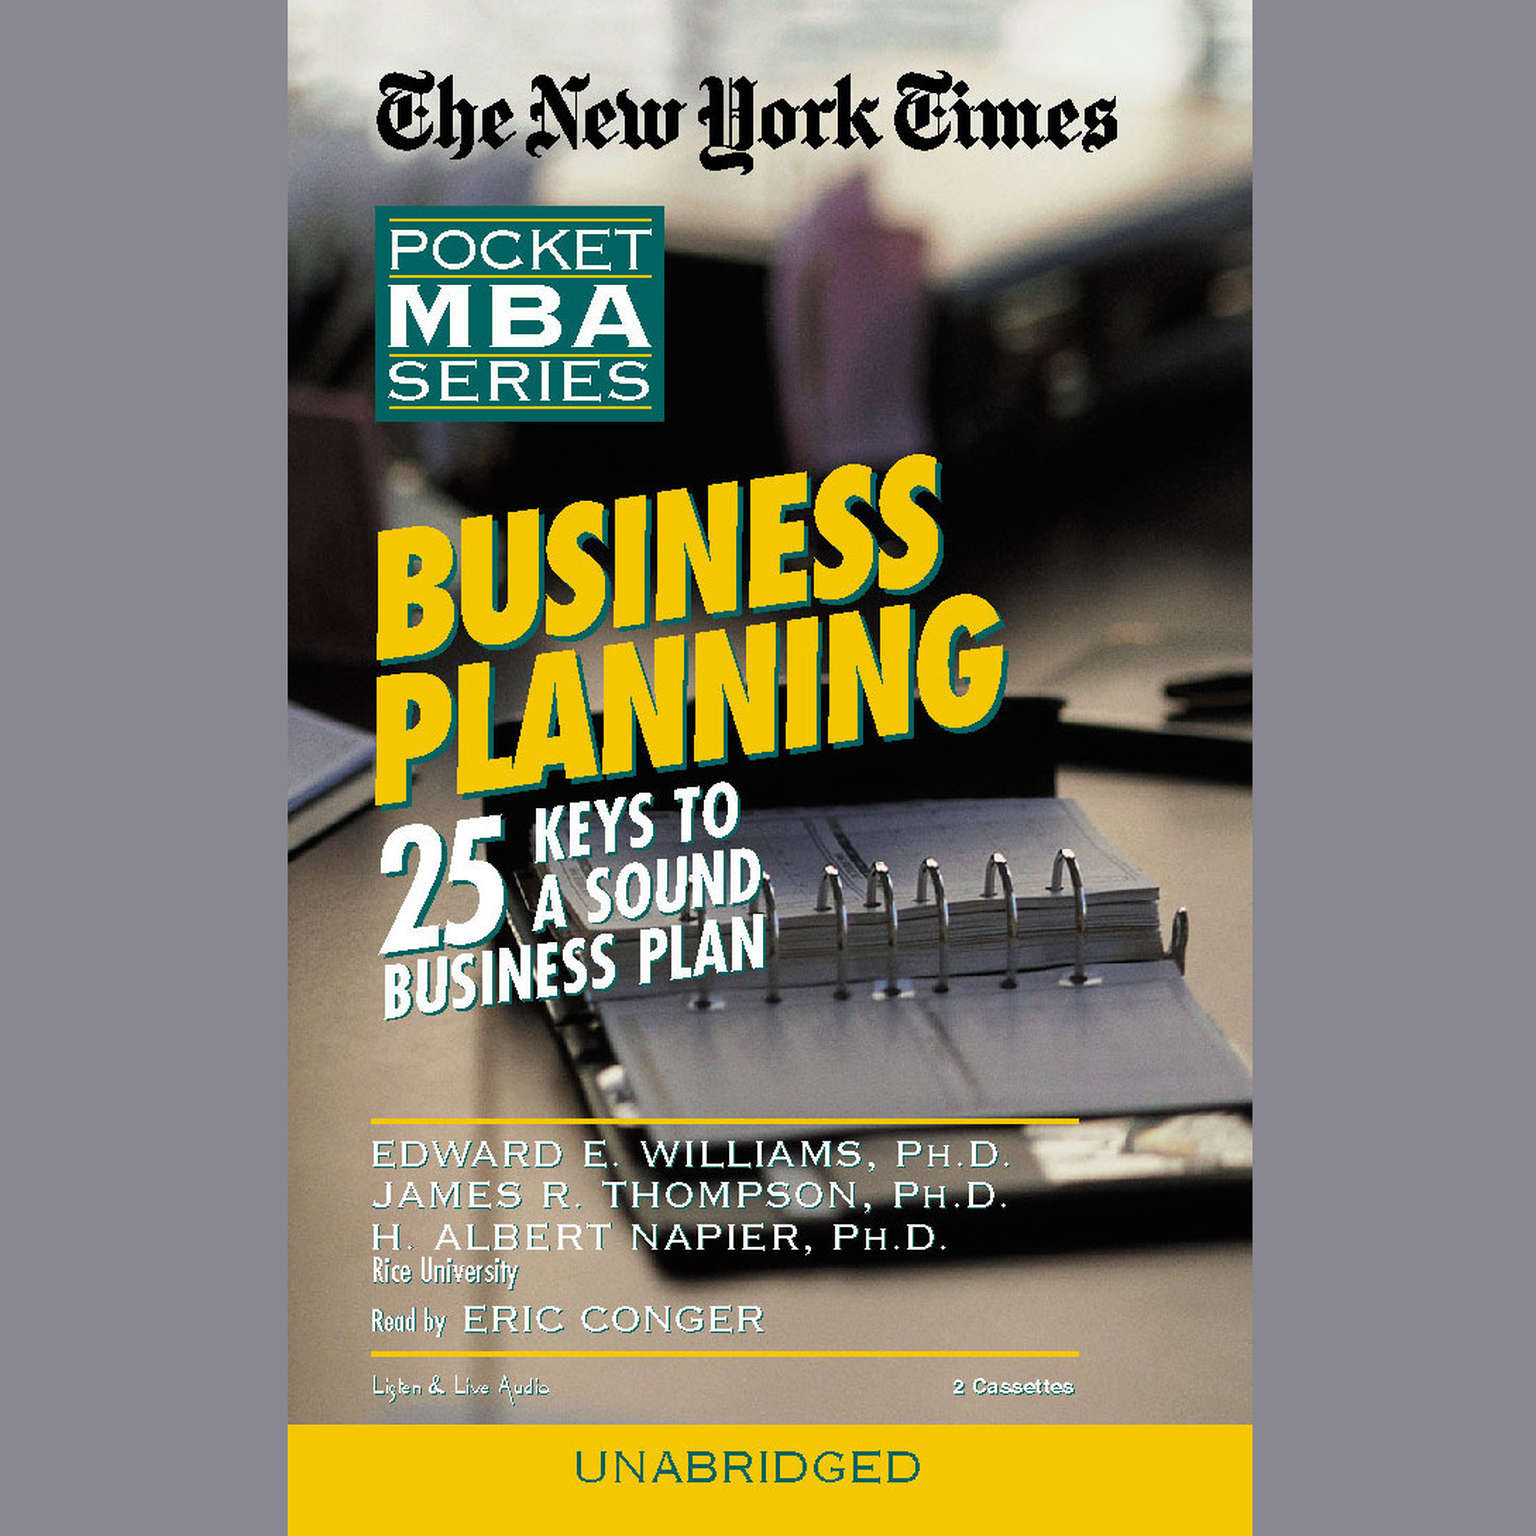 Book store business plan